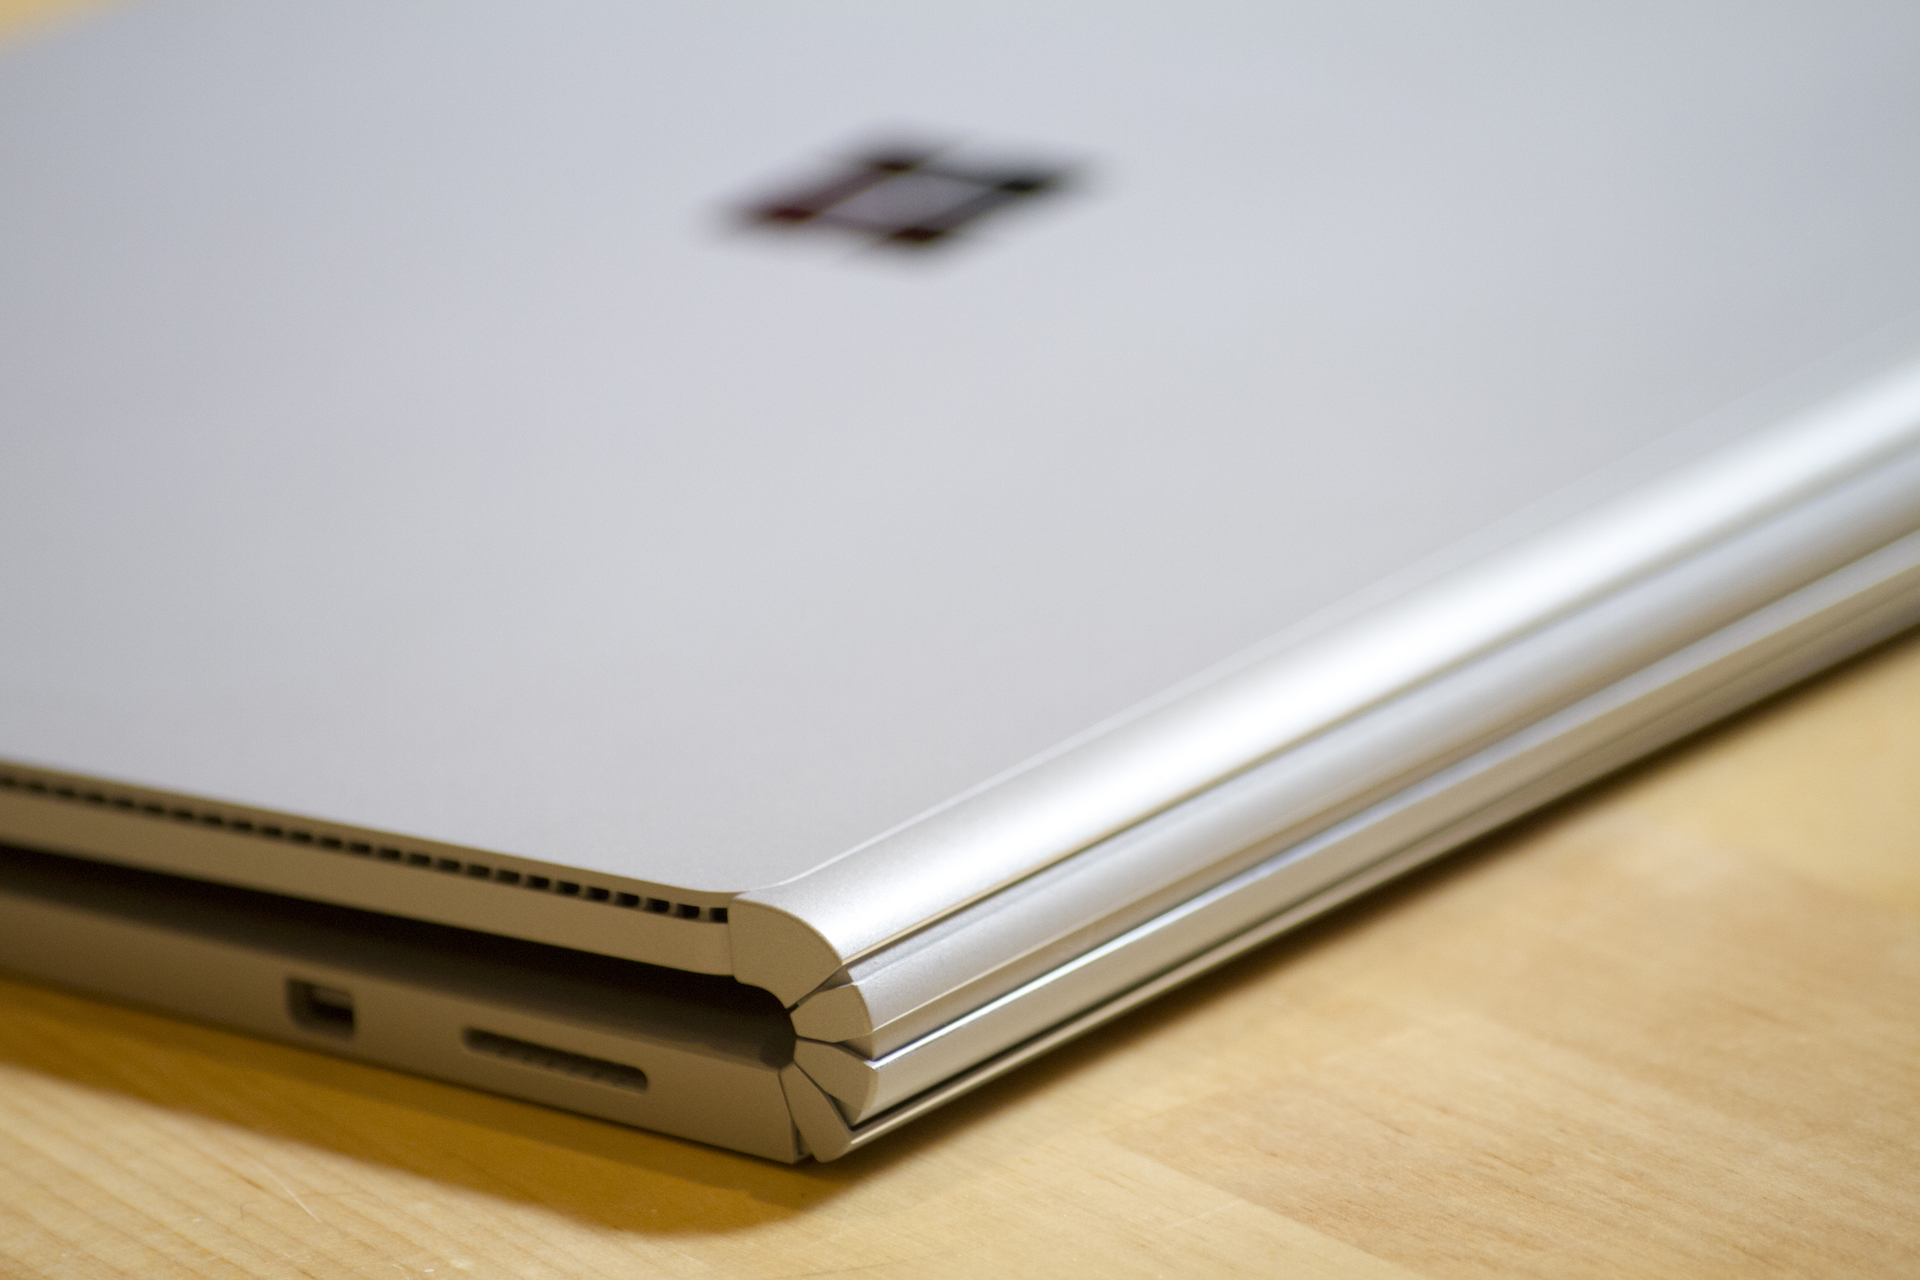 The Surface Book has a novel hinge.